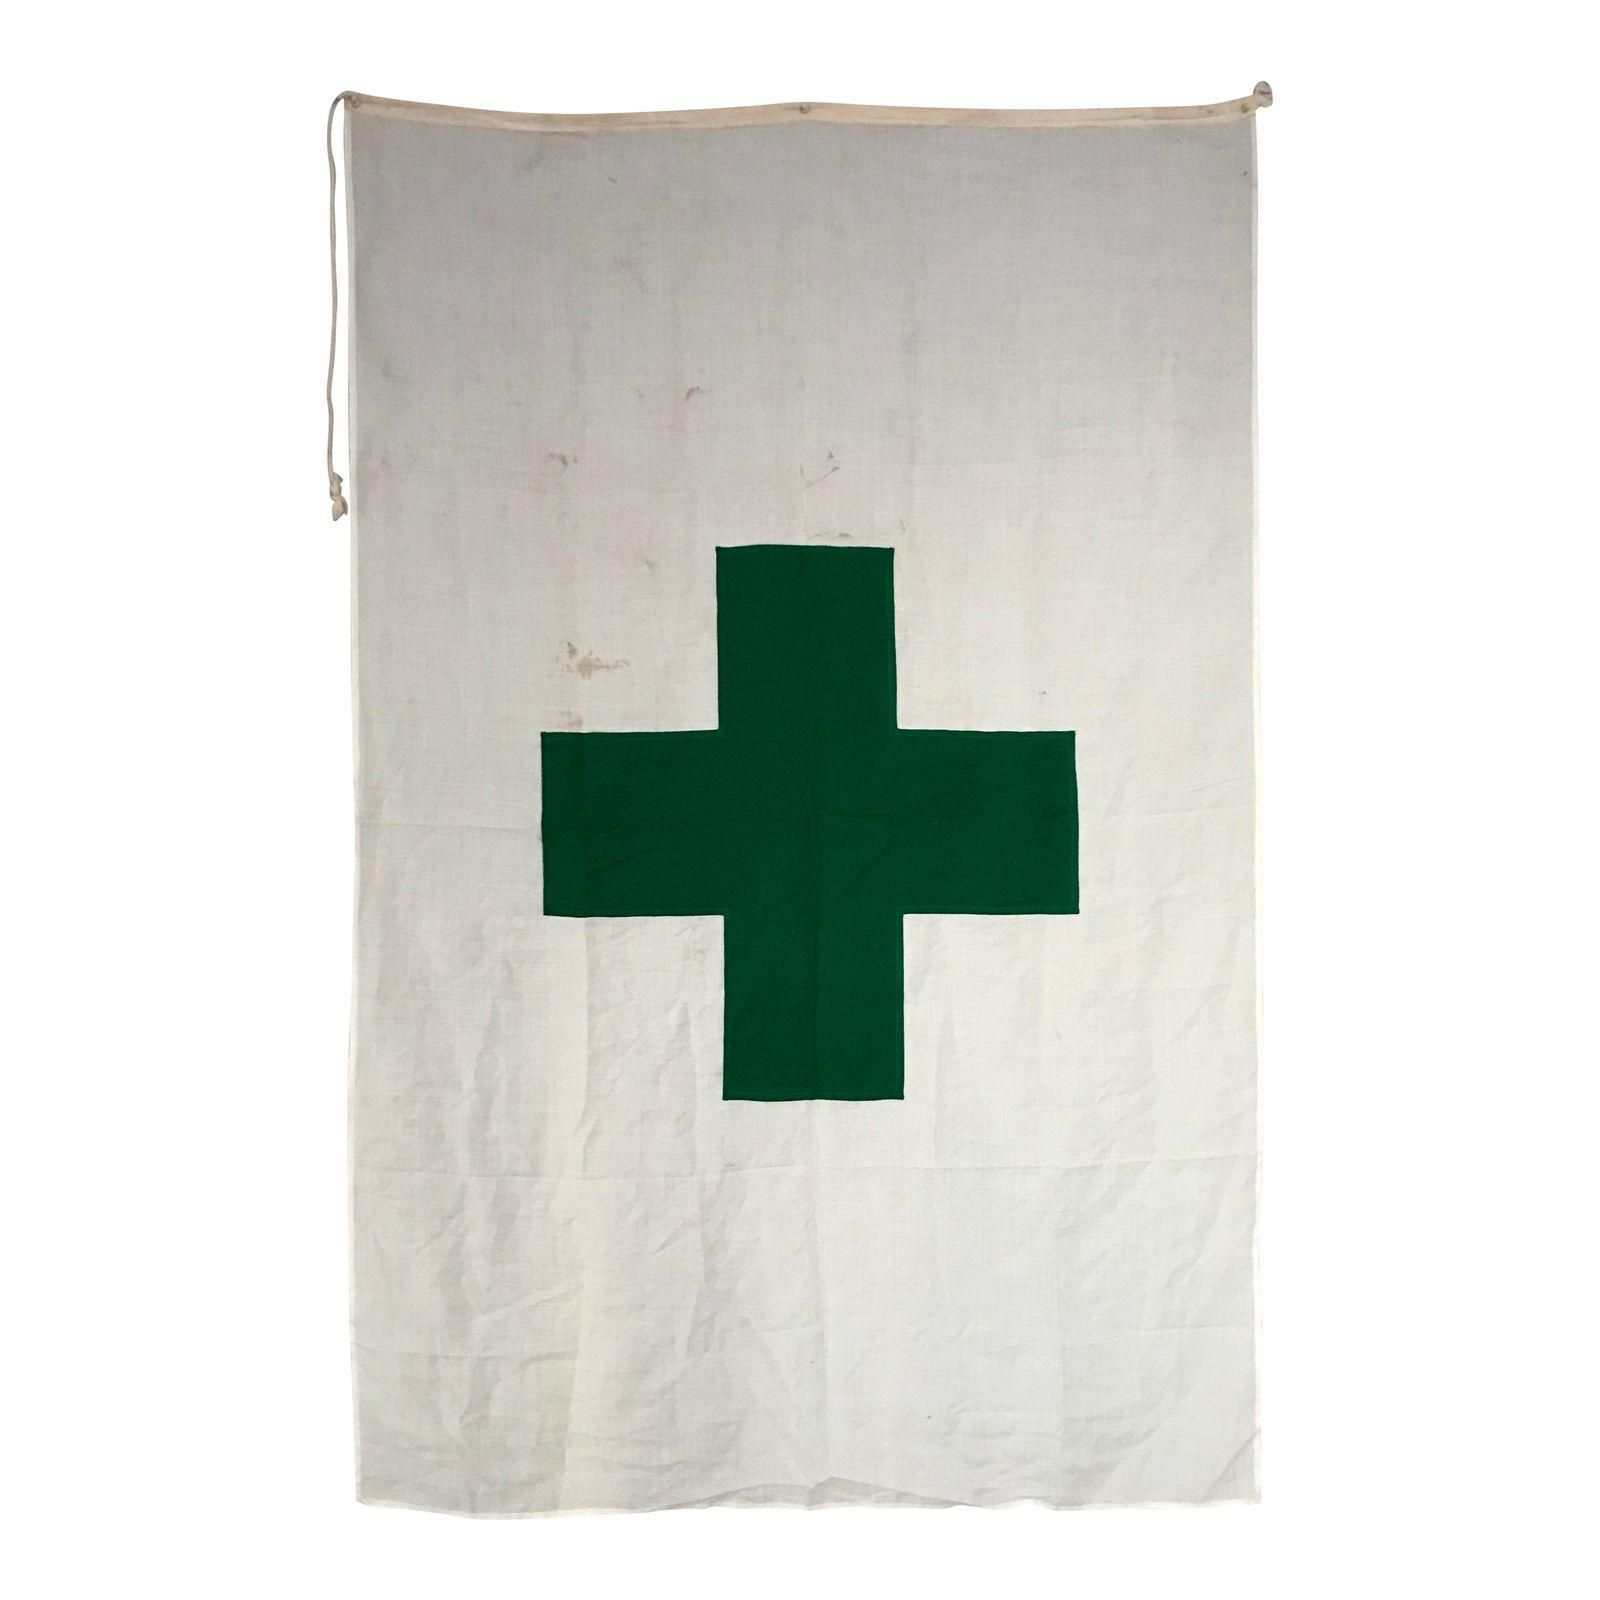 Vintage International Green Cross Flag Image 1 Of 4 In 2020 Cross Flag Flag Vintage